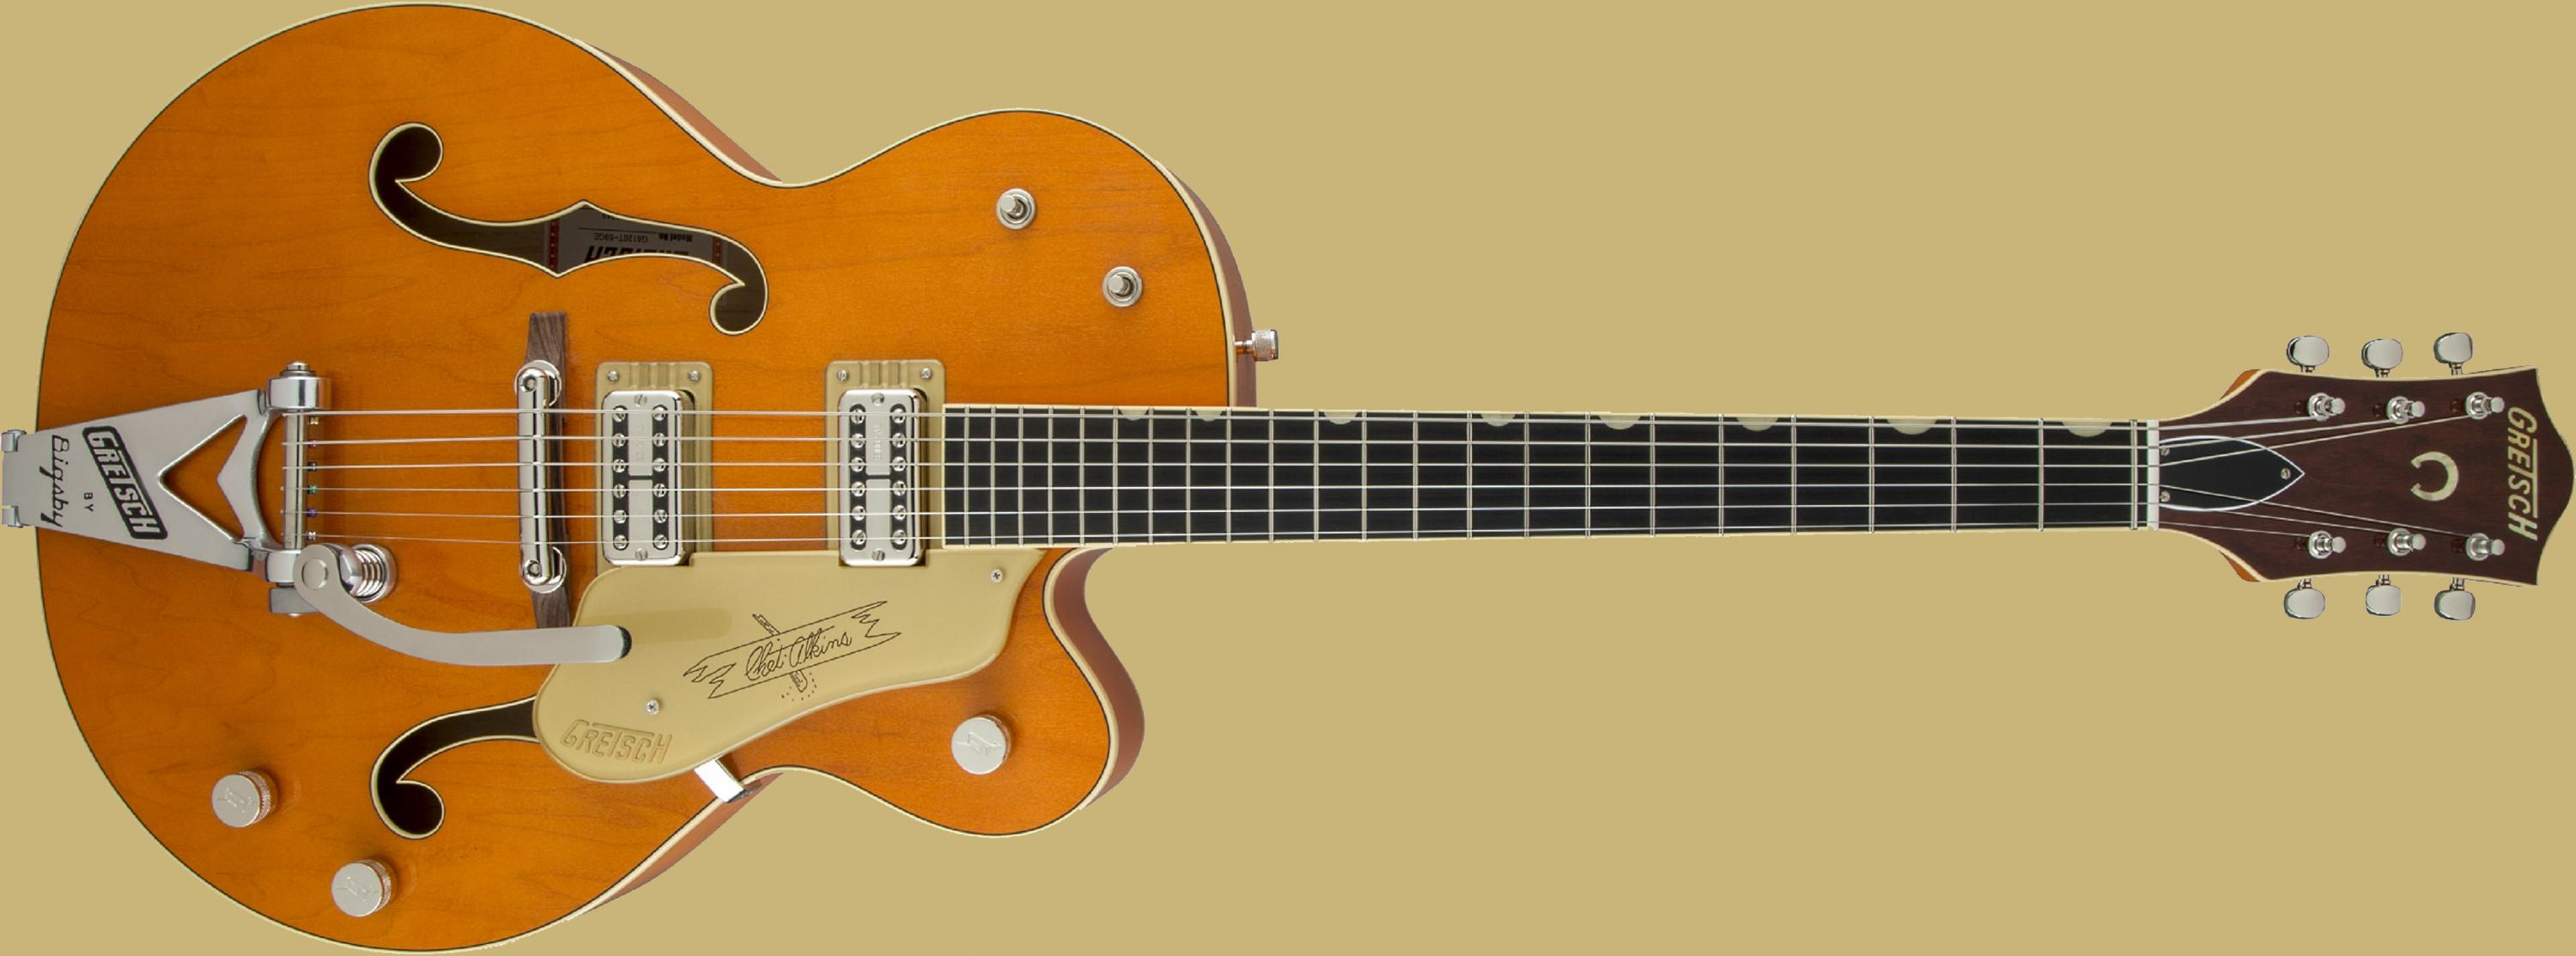 The one that got away-gretsch-59-6120-ri-jpg